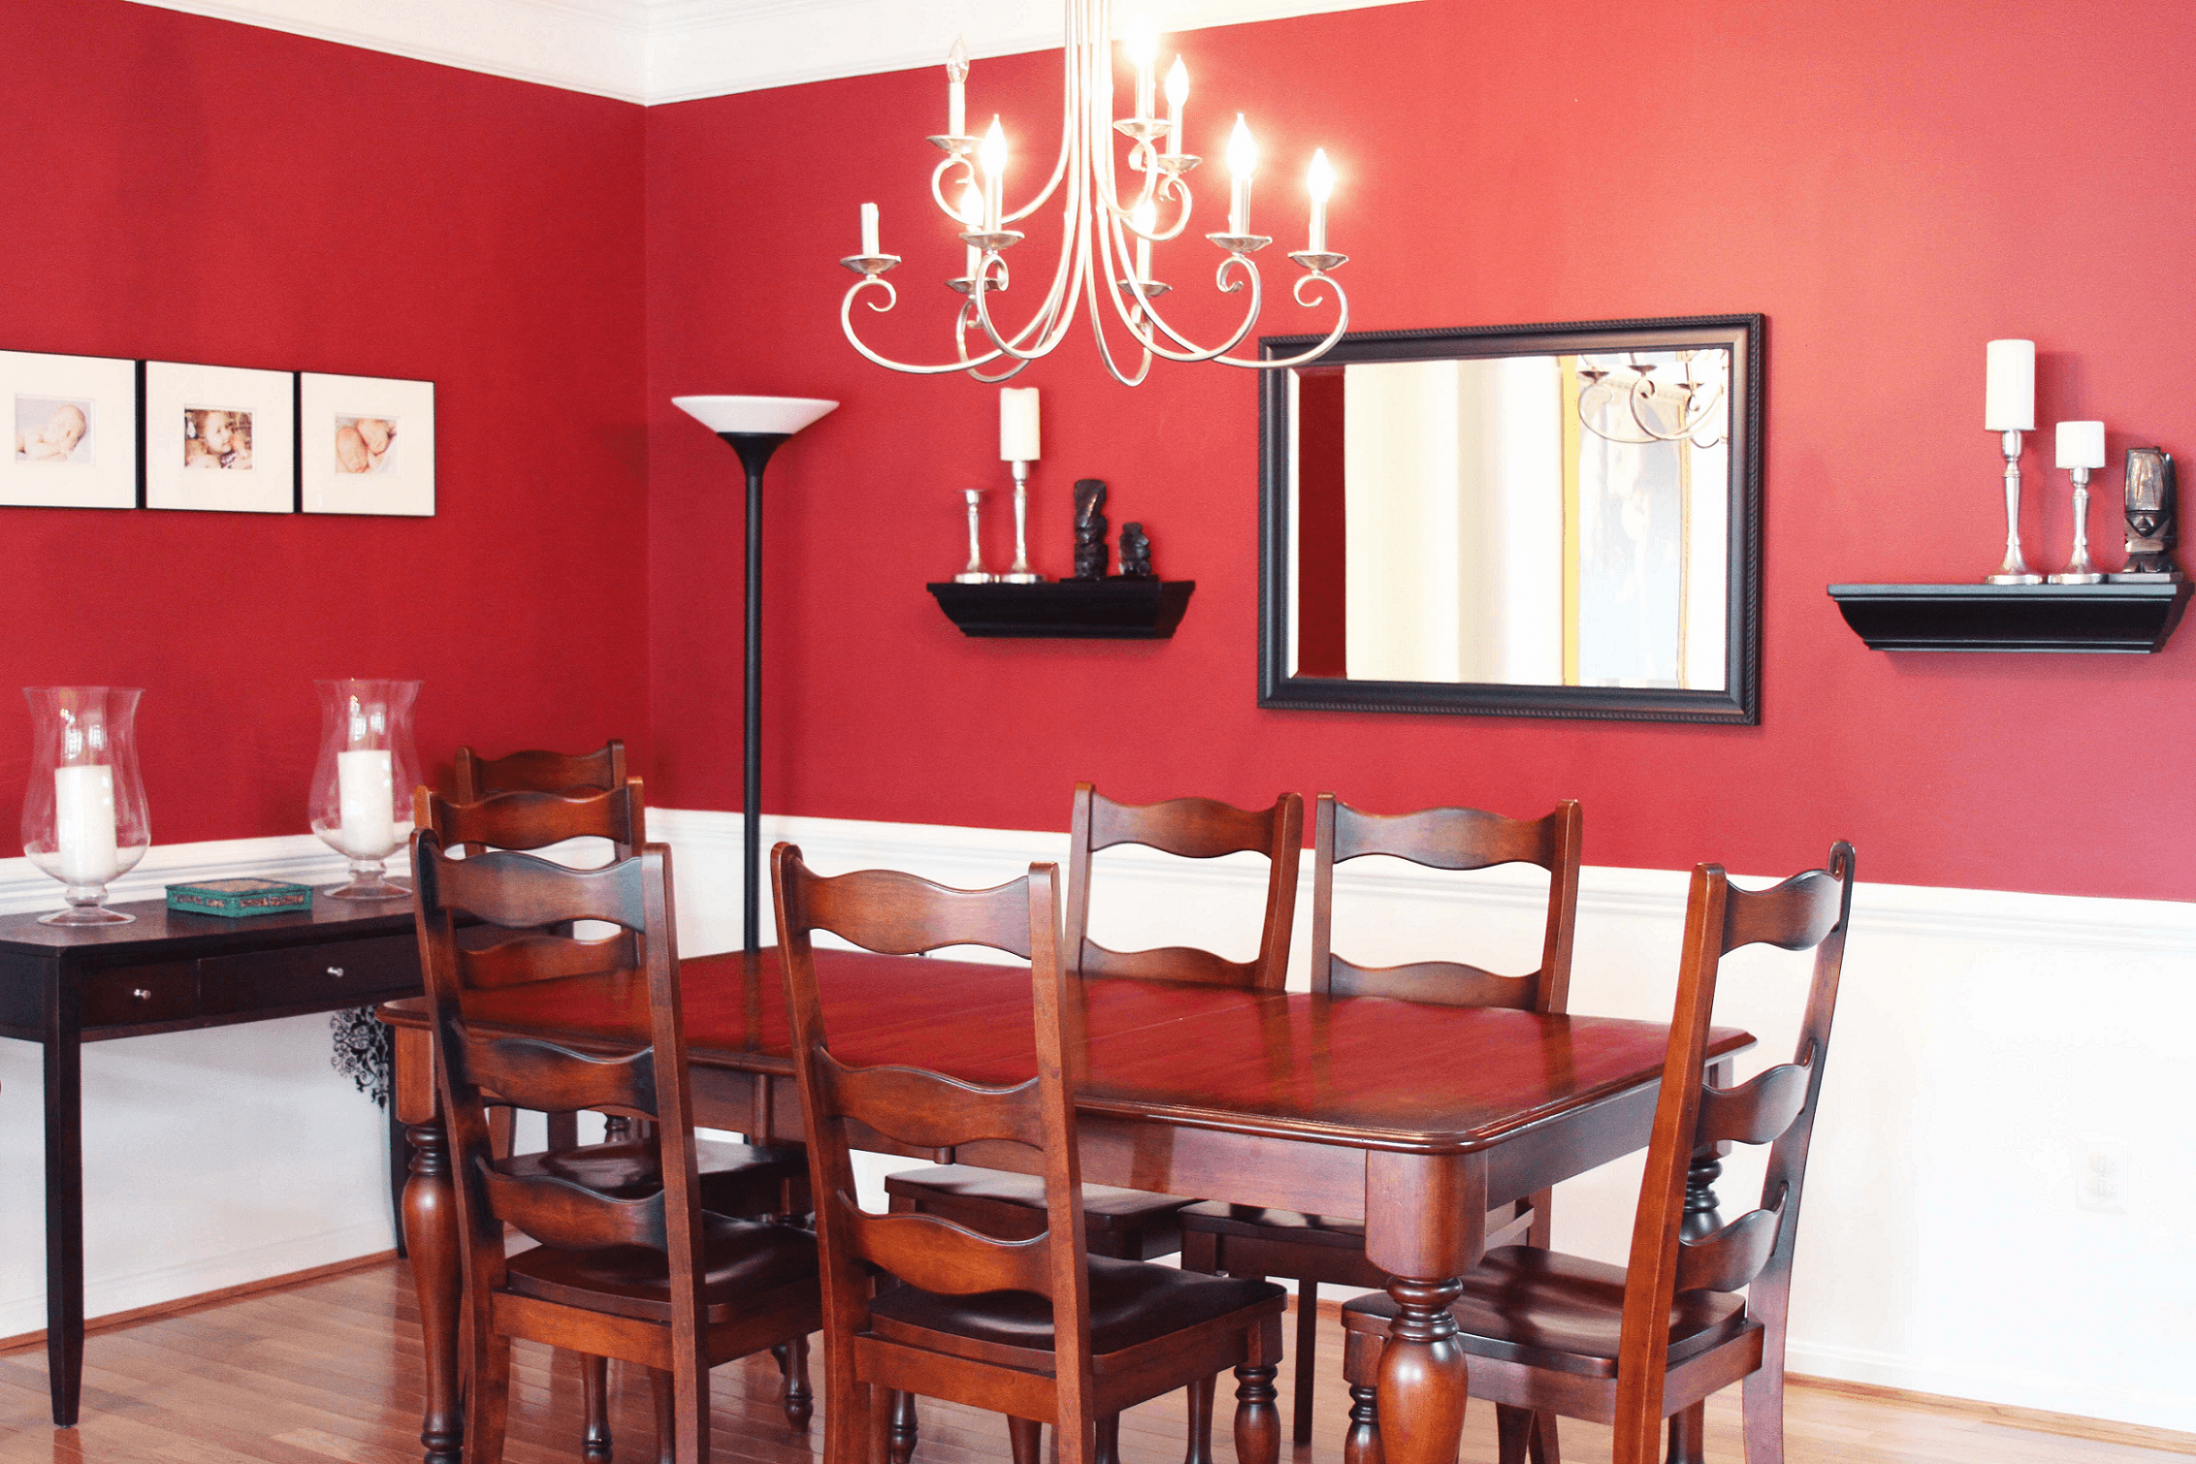 Red Painting Traditional dining room wall decor – EasyHomeTips